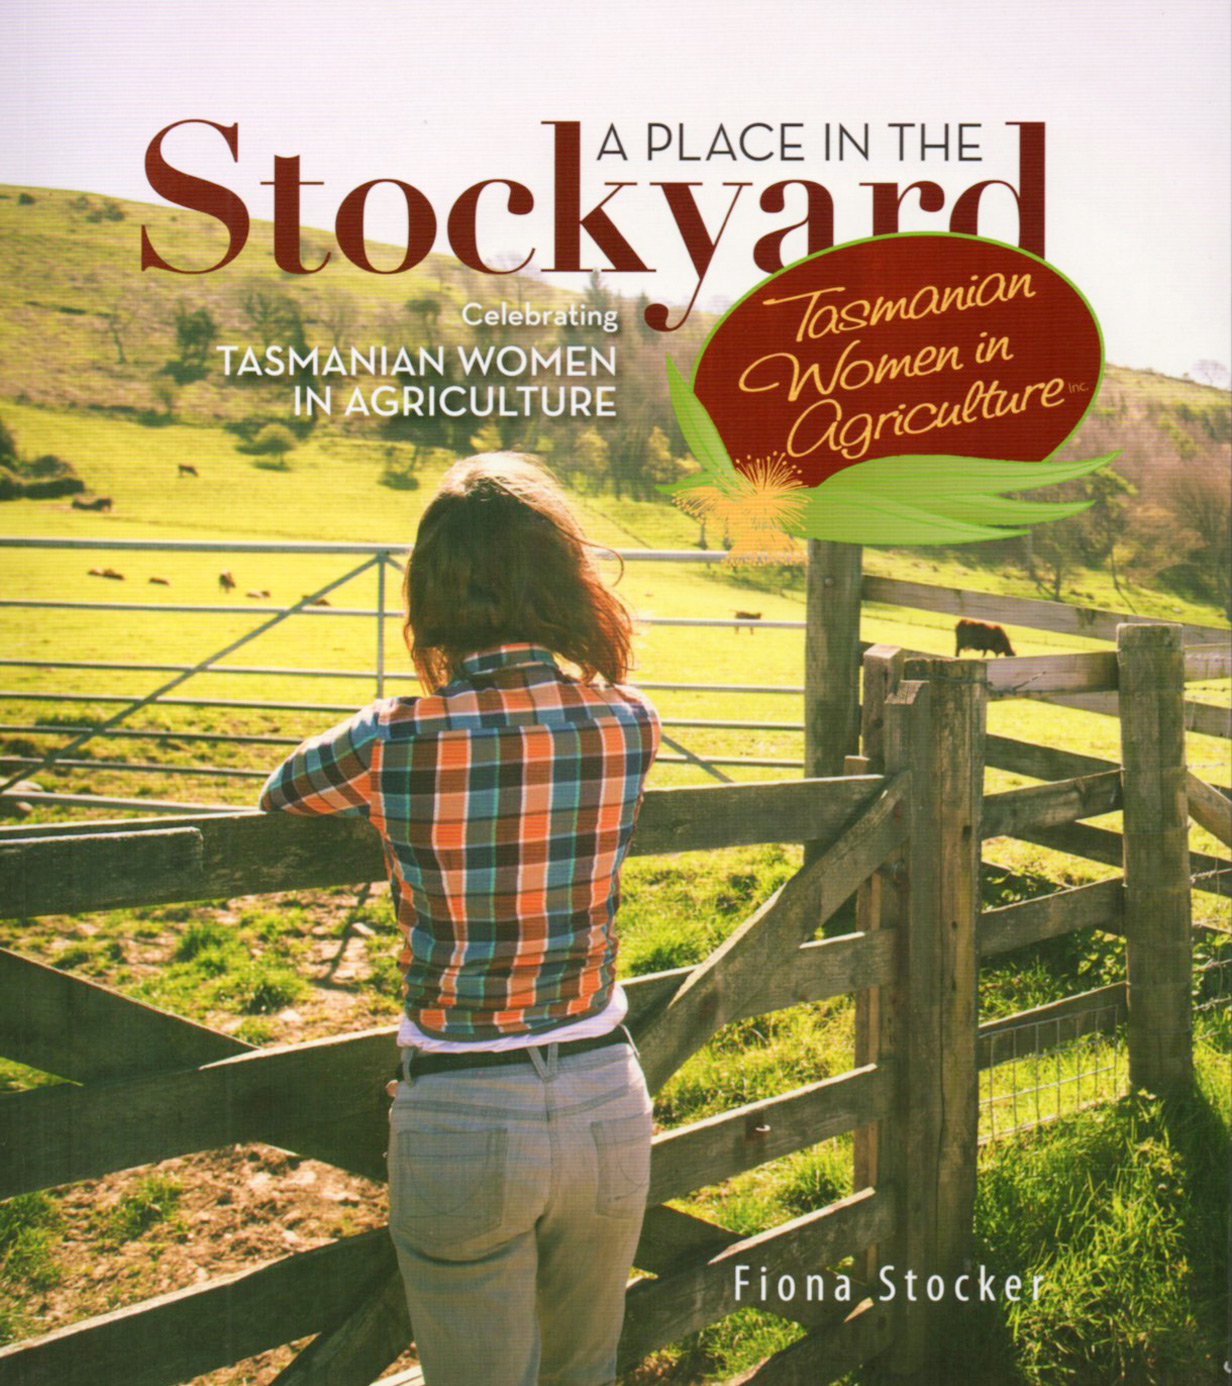 A Place in the Stockyard